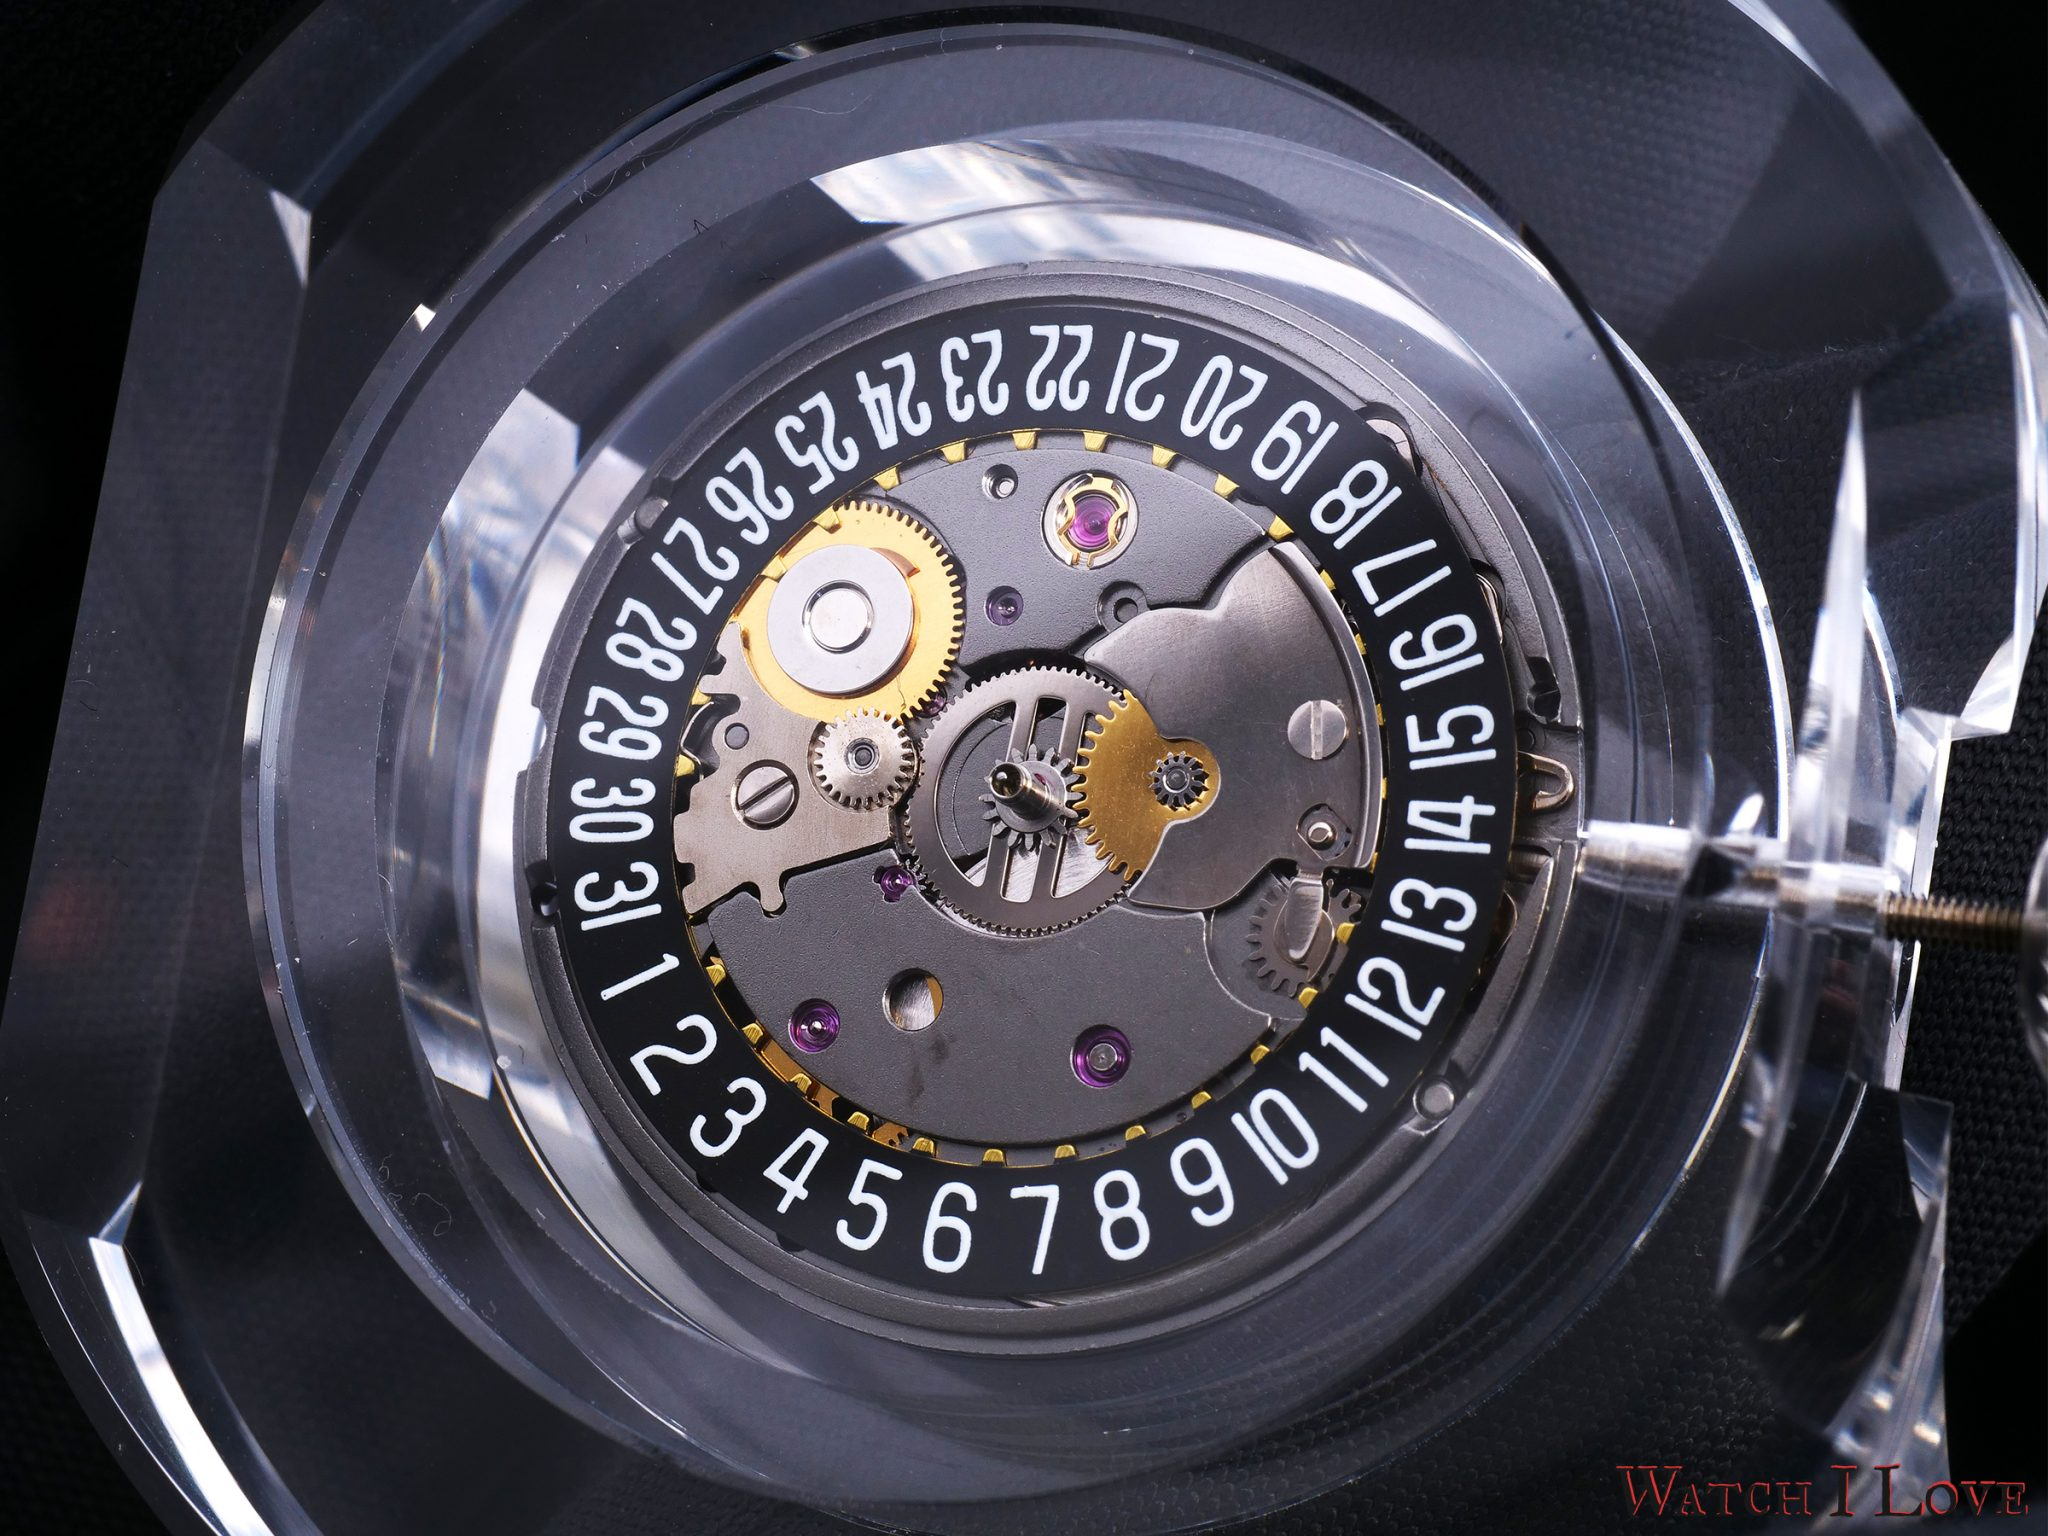 Calibre 5 - watchmakers side